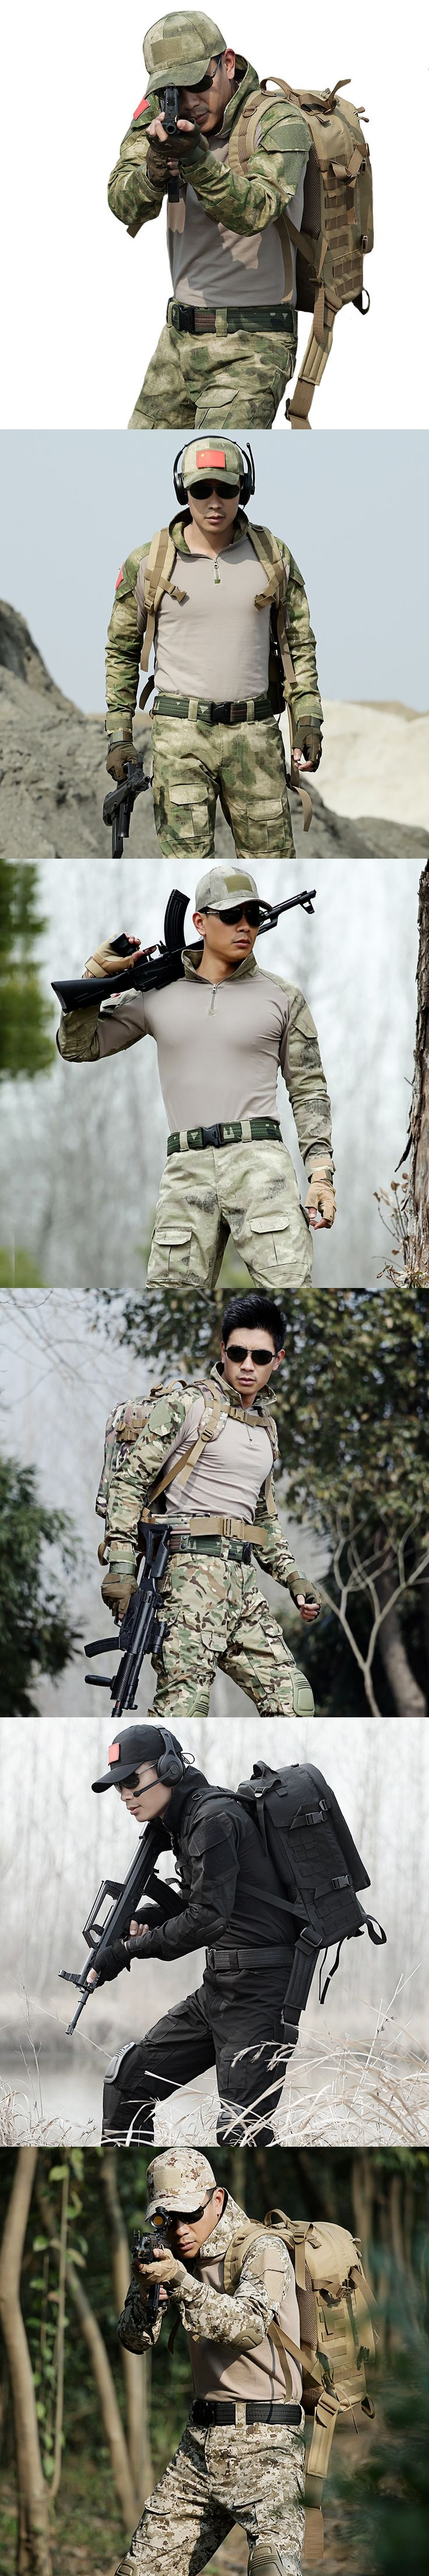 Tactical Suits Special Forces Military Camouflage T Shirt Mens Marine Corps Army SWAT Spetsnaz Combat Clothes Tactic Gear